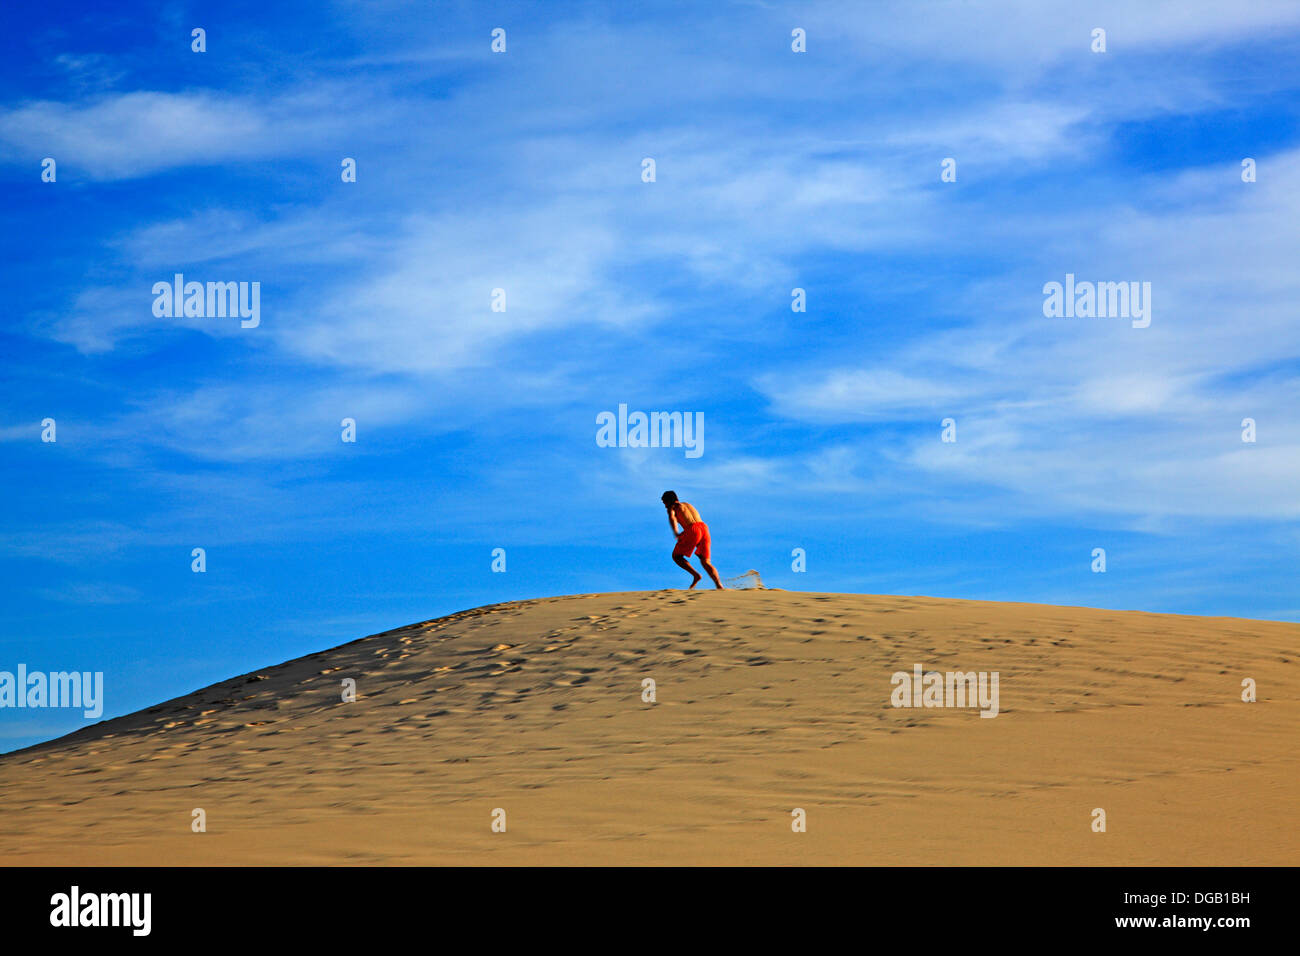 France Gironde Arcachon Dune De Pyla Stock Photo 61708181 Alamy